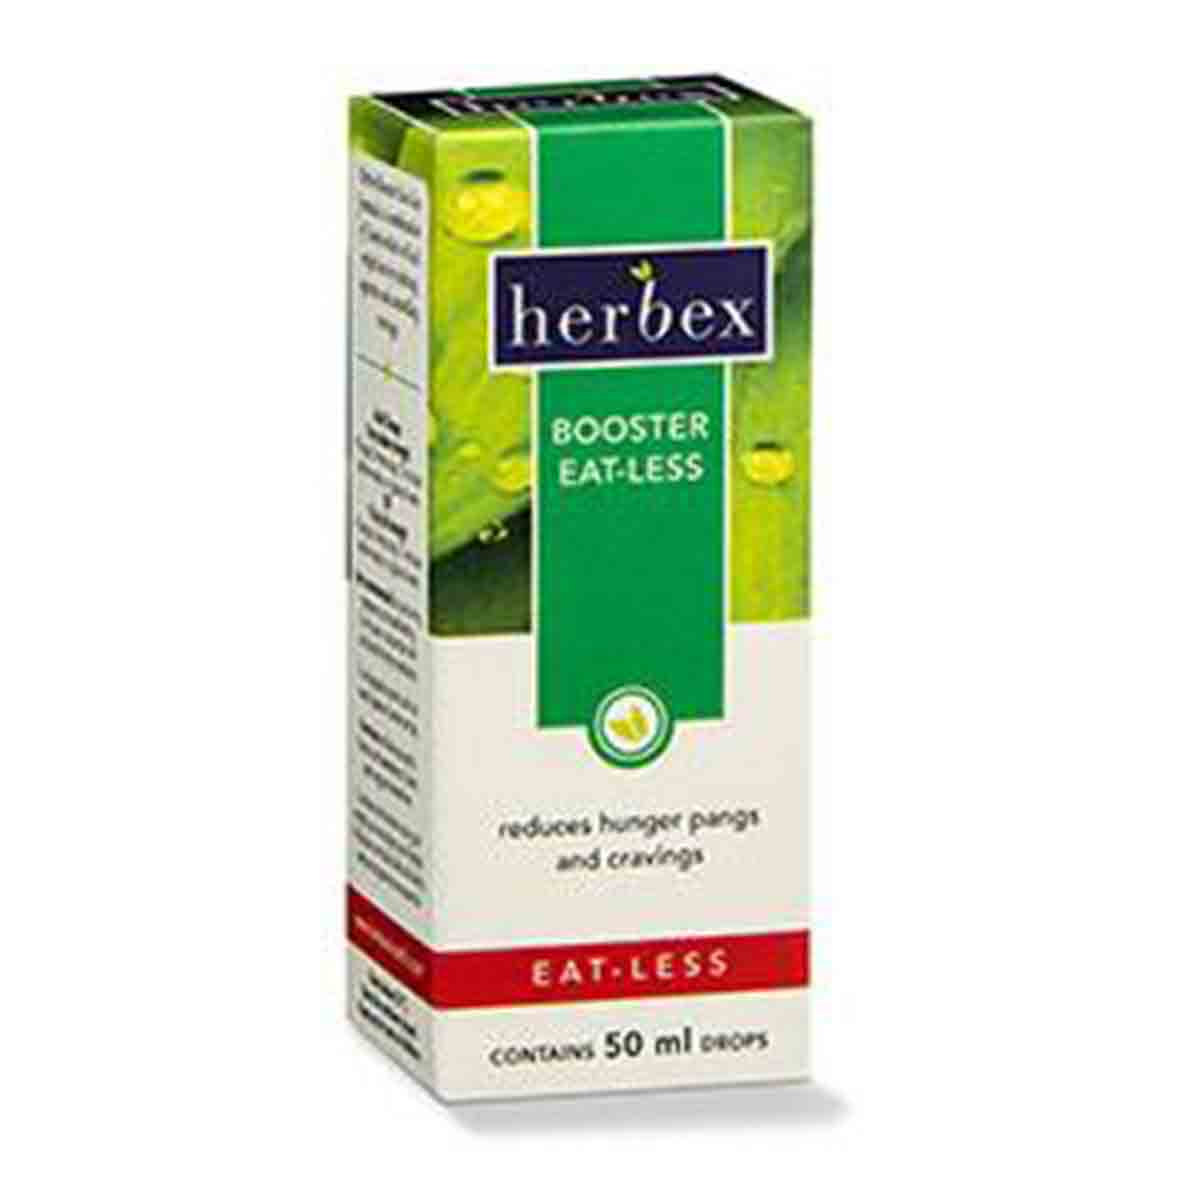 Herbex Booster Eat Less